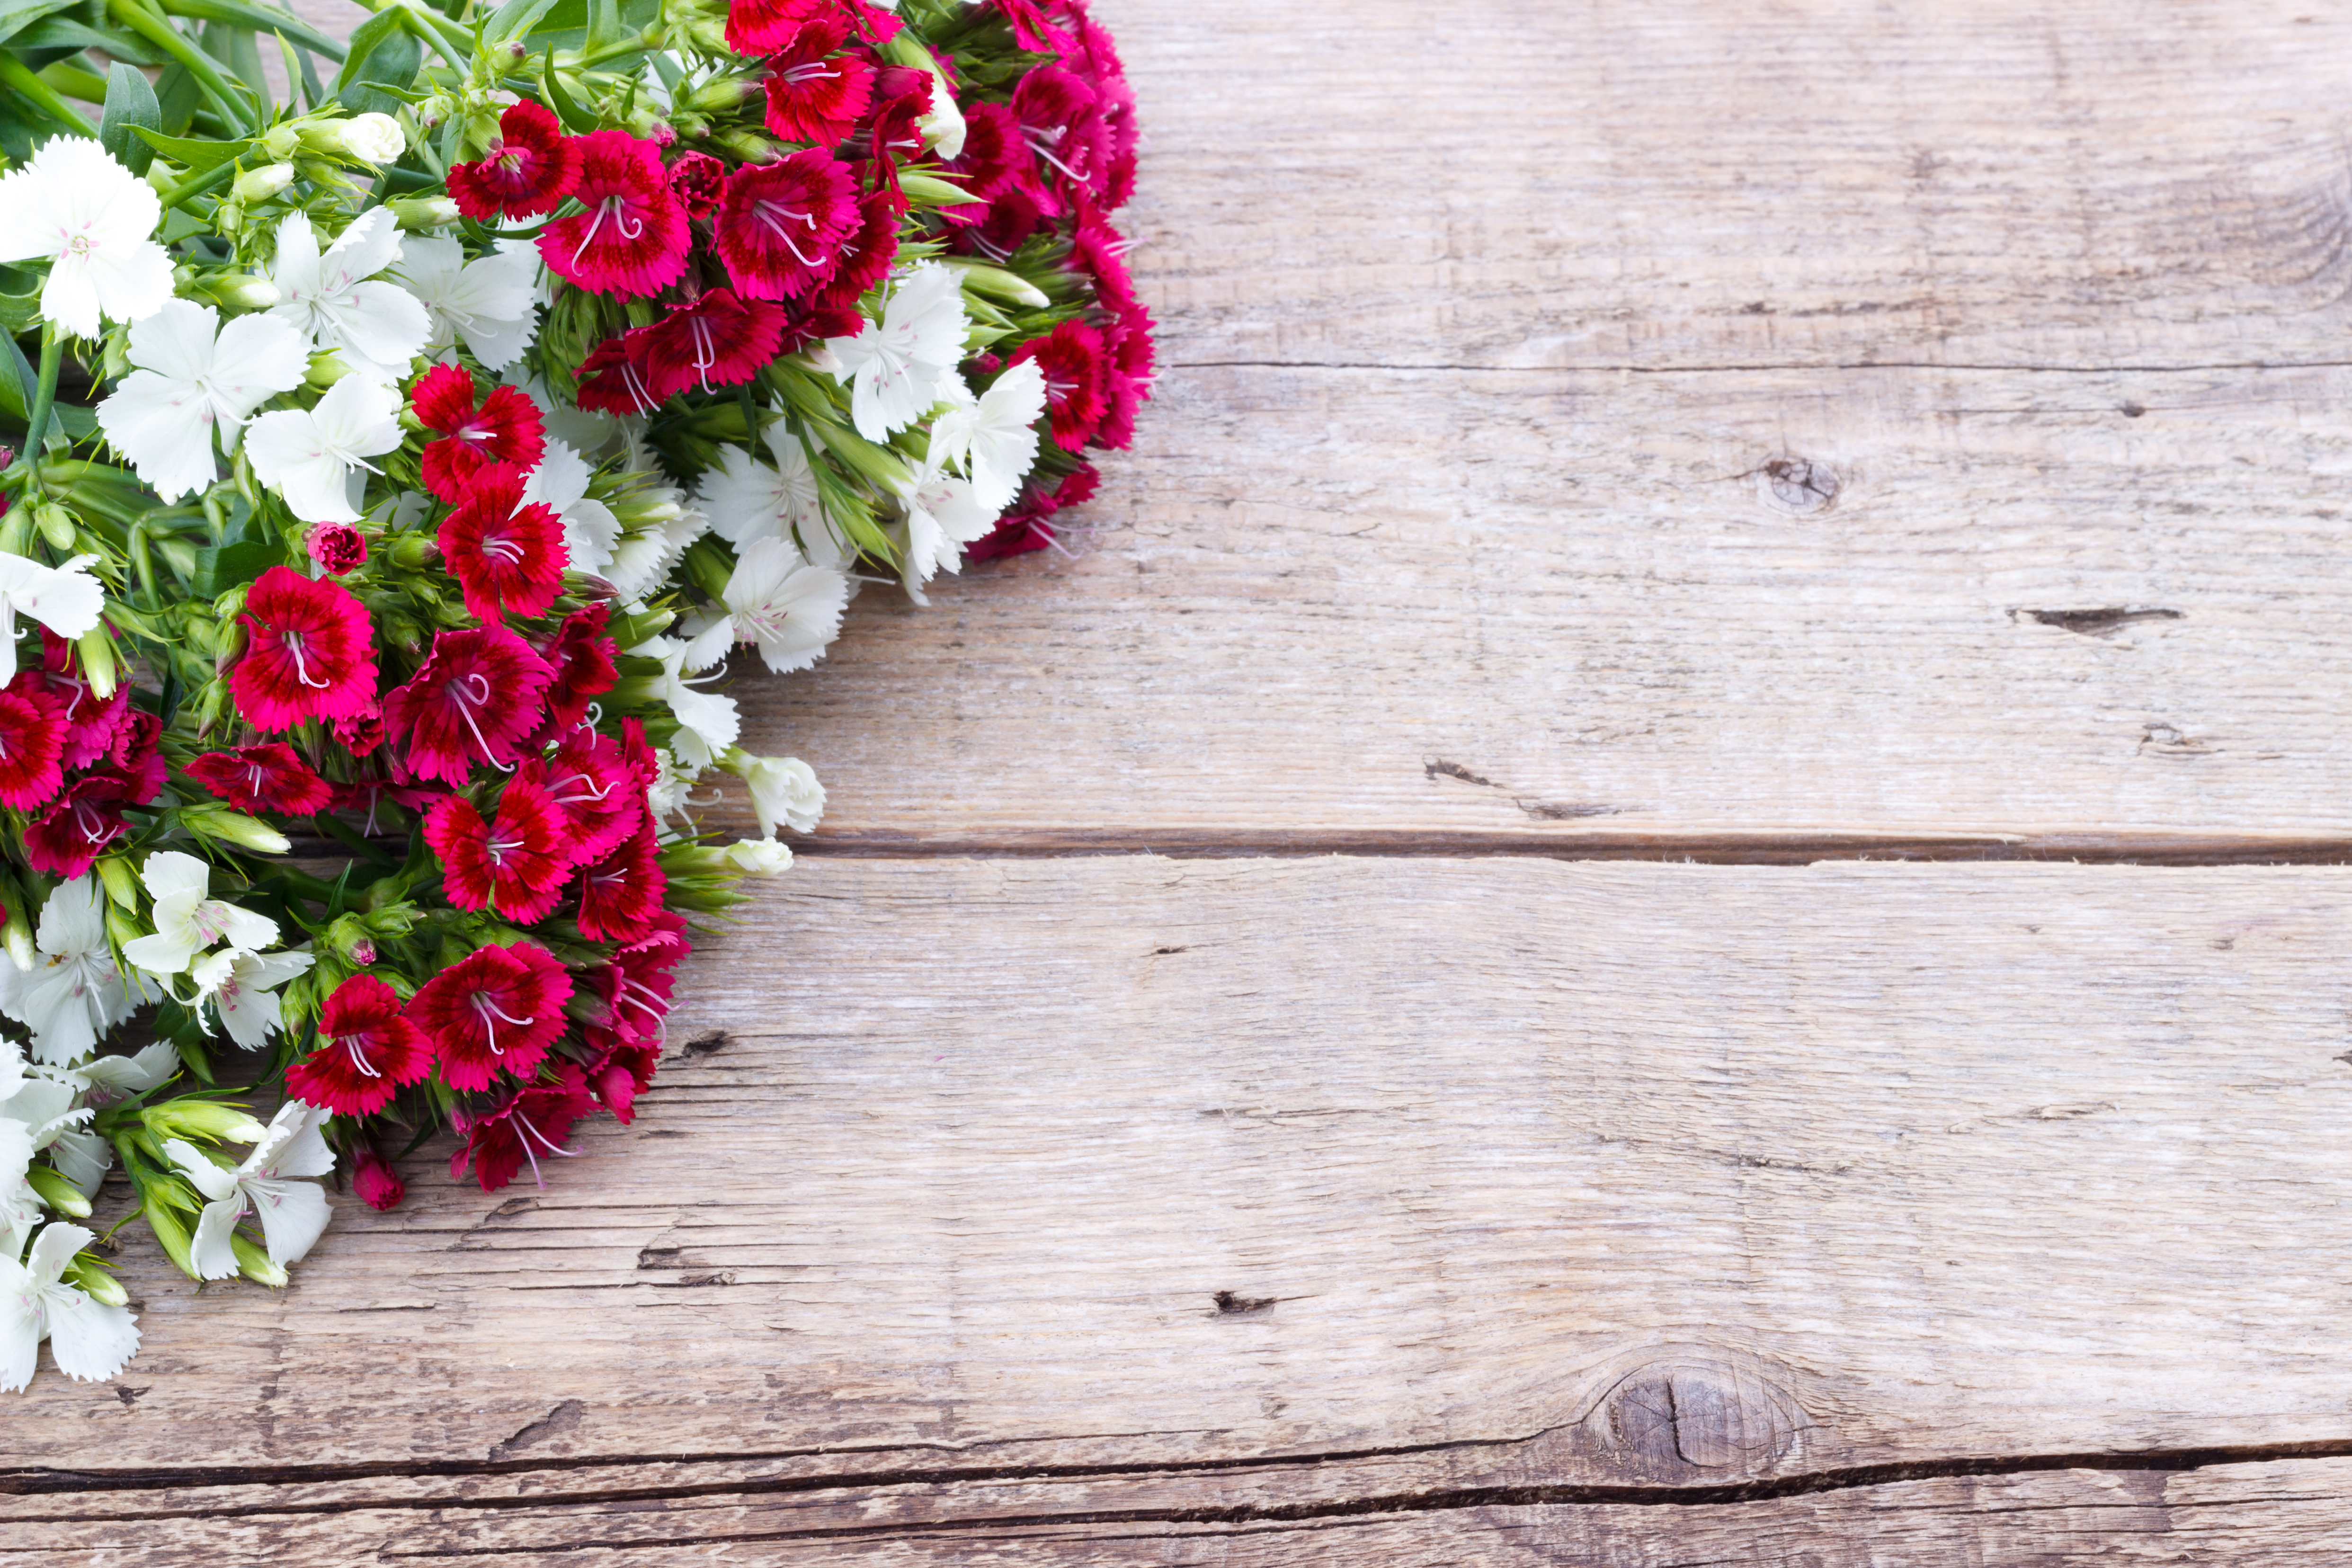 Birthday flowers a perfect guide to send birthday flowers as per fragrant carnations are the birthday flowers for january they are available in a rainbow of colors and blossom sizes these flowers possess a delicate izmirmasajfo